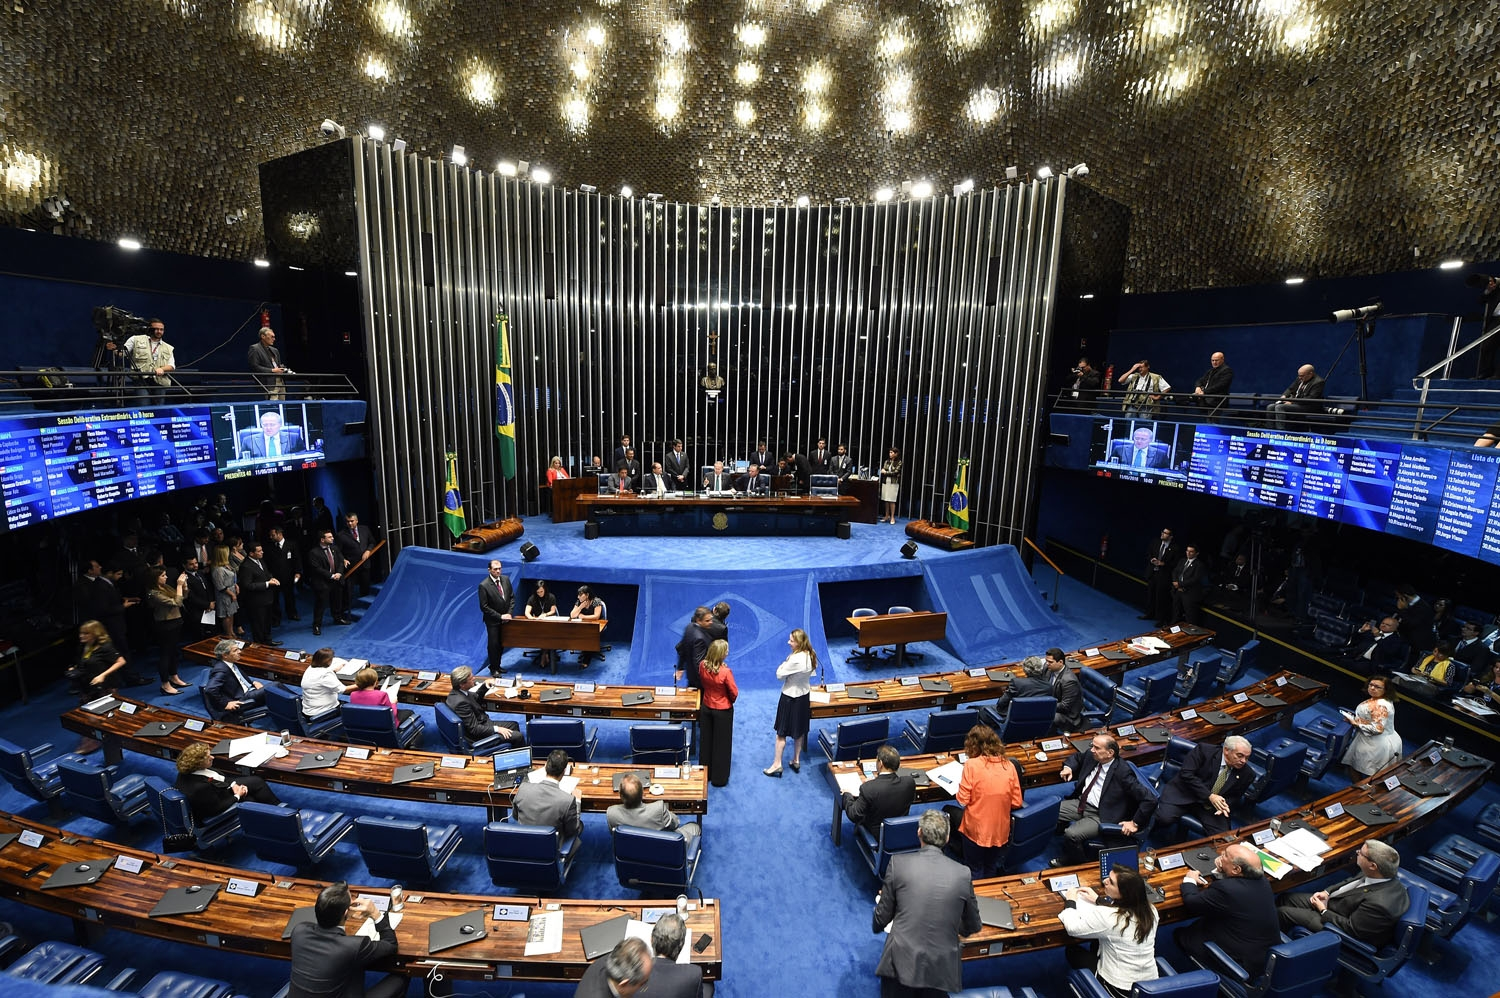 Overview of the Senate session during a debate of a vote on suspending President Dilma Rousseff and launching an impeachment trial, in Brasilia on May 11, 2016.